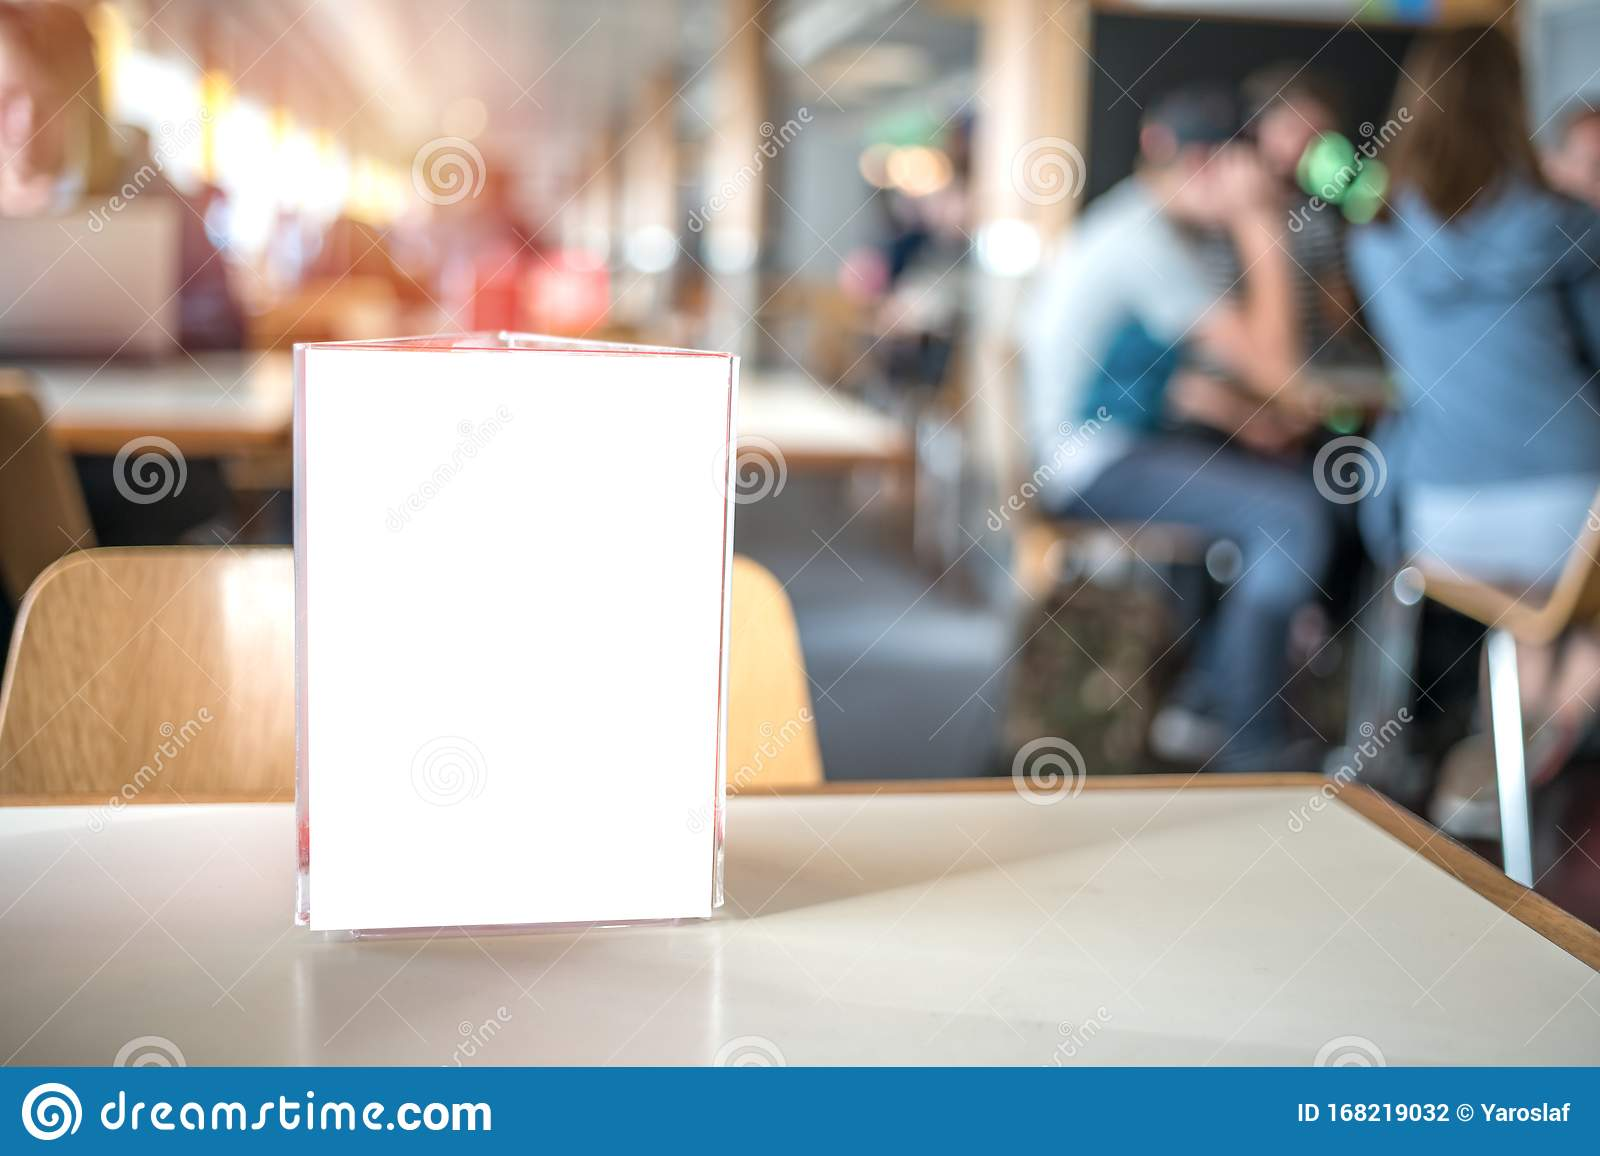 Frame For Menu On Table Of Bar In Cafe Restaurant Stock Photo Image Of Information Print 168219032